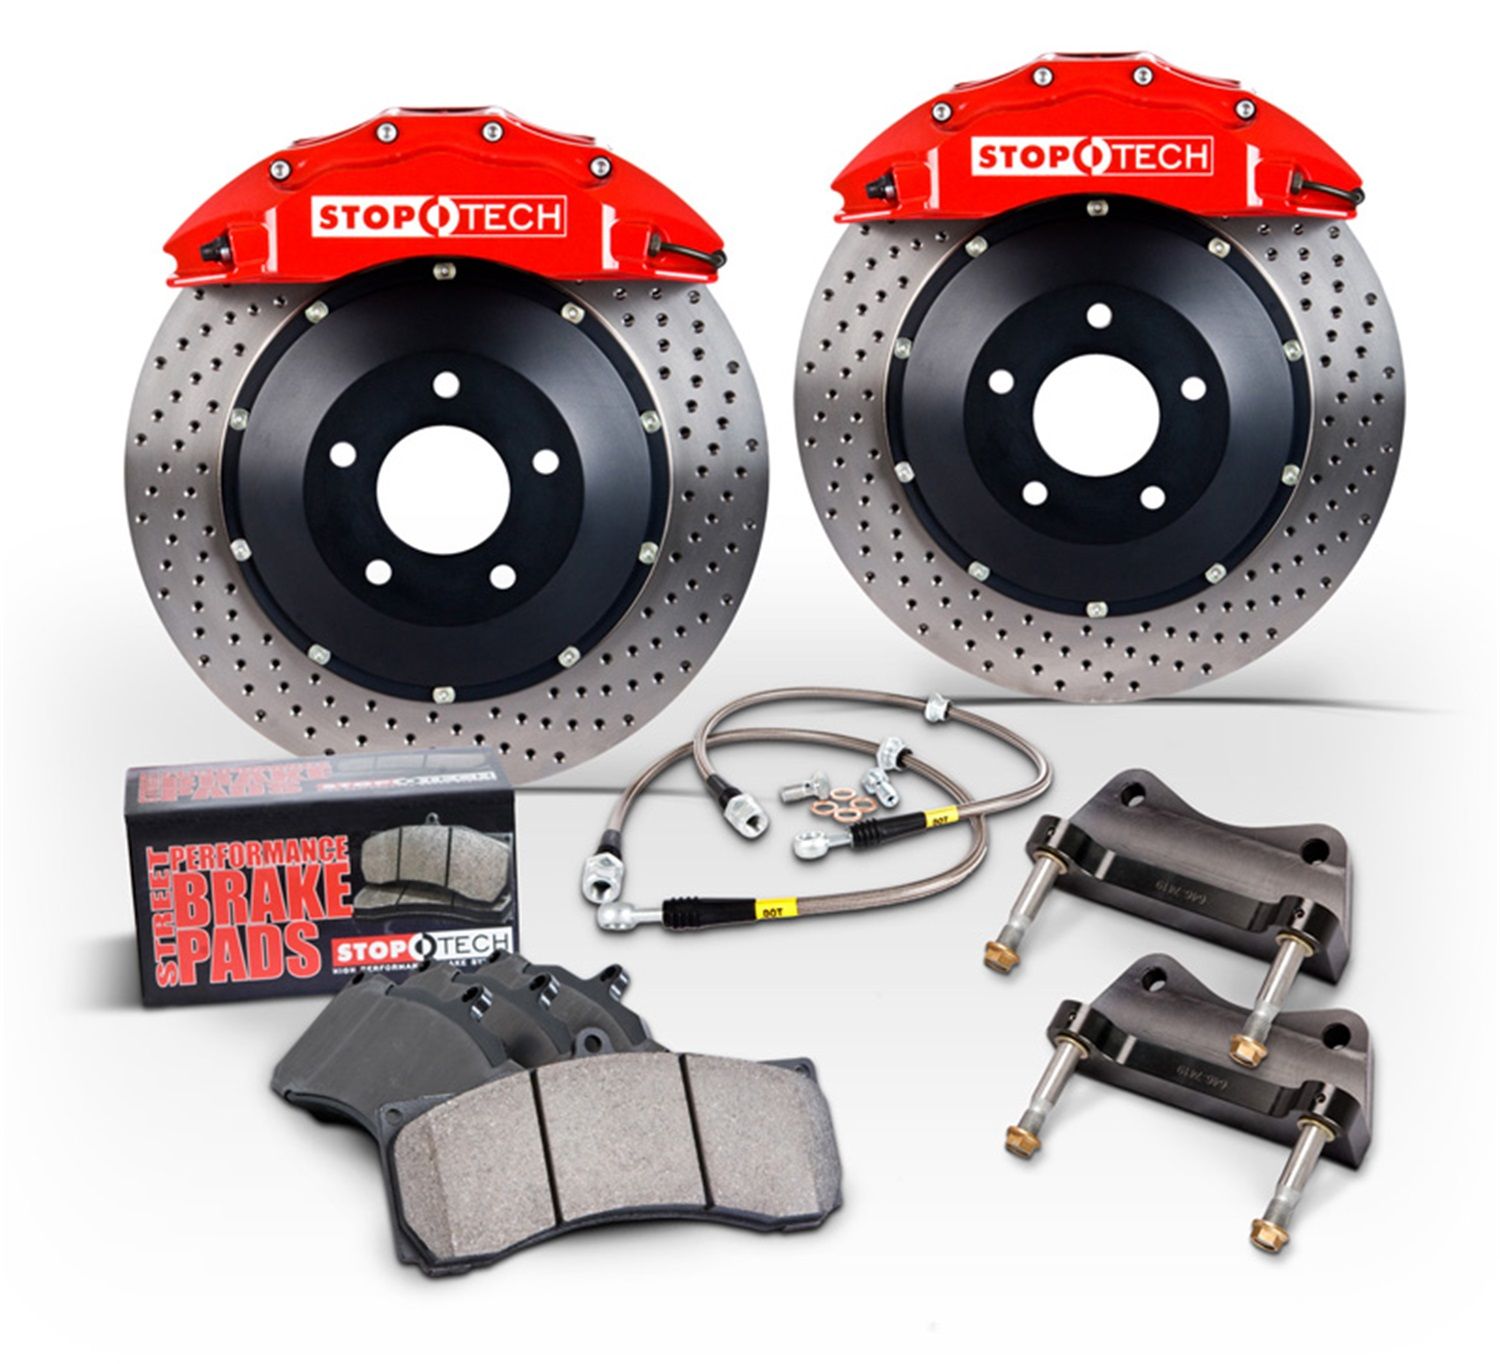 StopTech 83.896.6800.71 StopTech Big Brake Kit Fits 15-16 Golf R S3